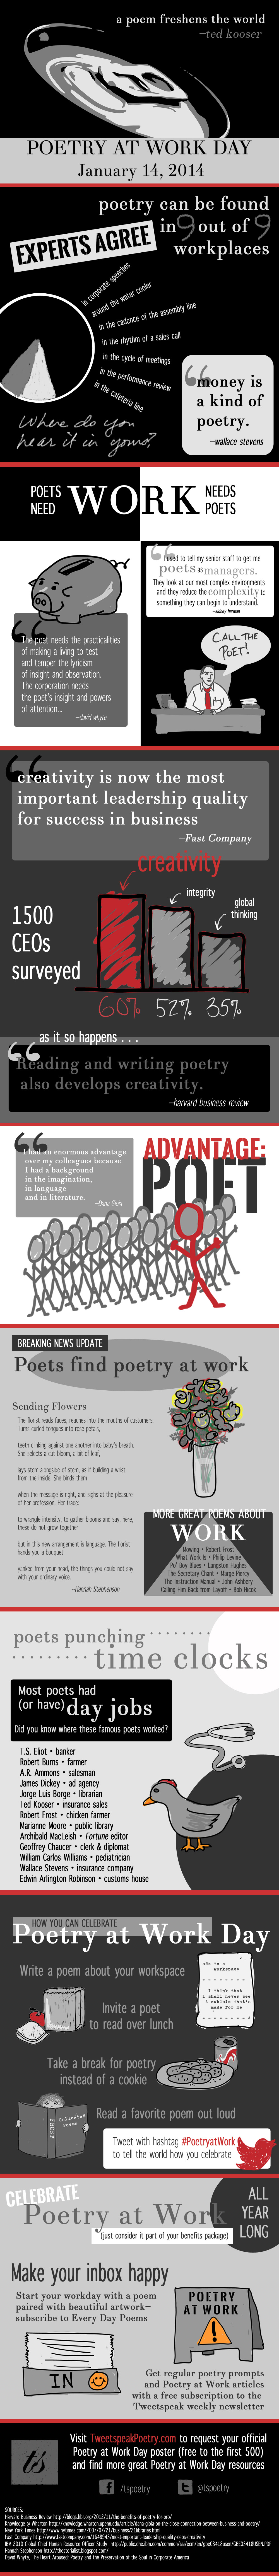 Poetry At Work Day - Infographic